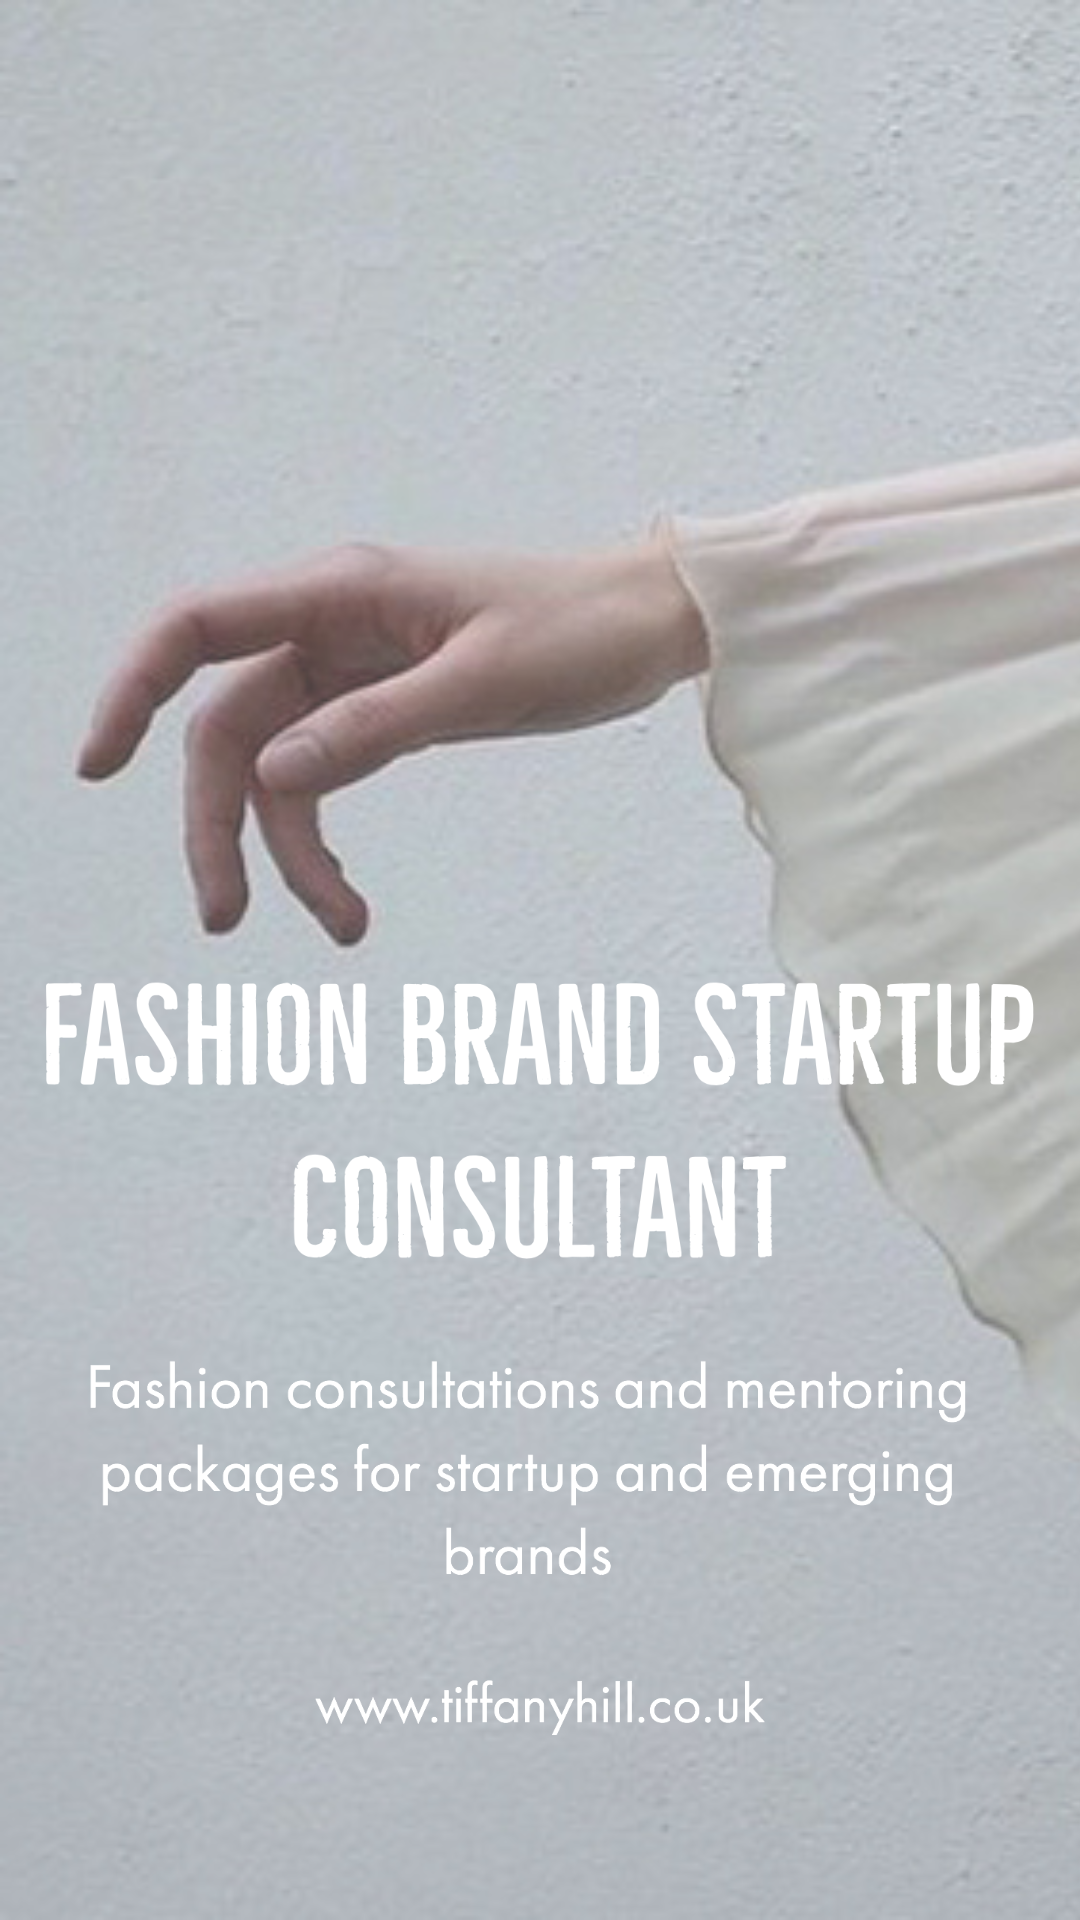 Whether you are an emerging brand looking to grow your business, or a new fashion startup looking for specific guidance, this fashion consultation session will focus entirely on the issues you are seeking to resolve. #fashionbrand #fashionconsultant #fashionbrandconsultant #fashionconsultation #fashionmentor #fashionmentoring #fashionstartup #consultation #newbrand #fashionlaunch #fashion #AW21 #AW22 #FW21 #FW22 #ladiesfashion #ladiestrends #WGSN #trendforecasting #trend